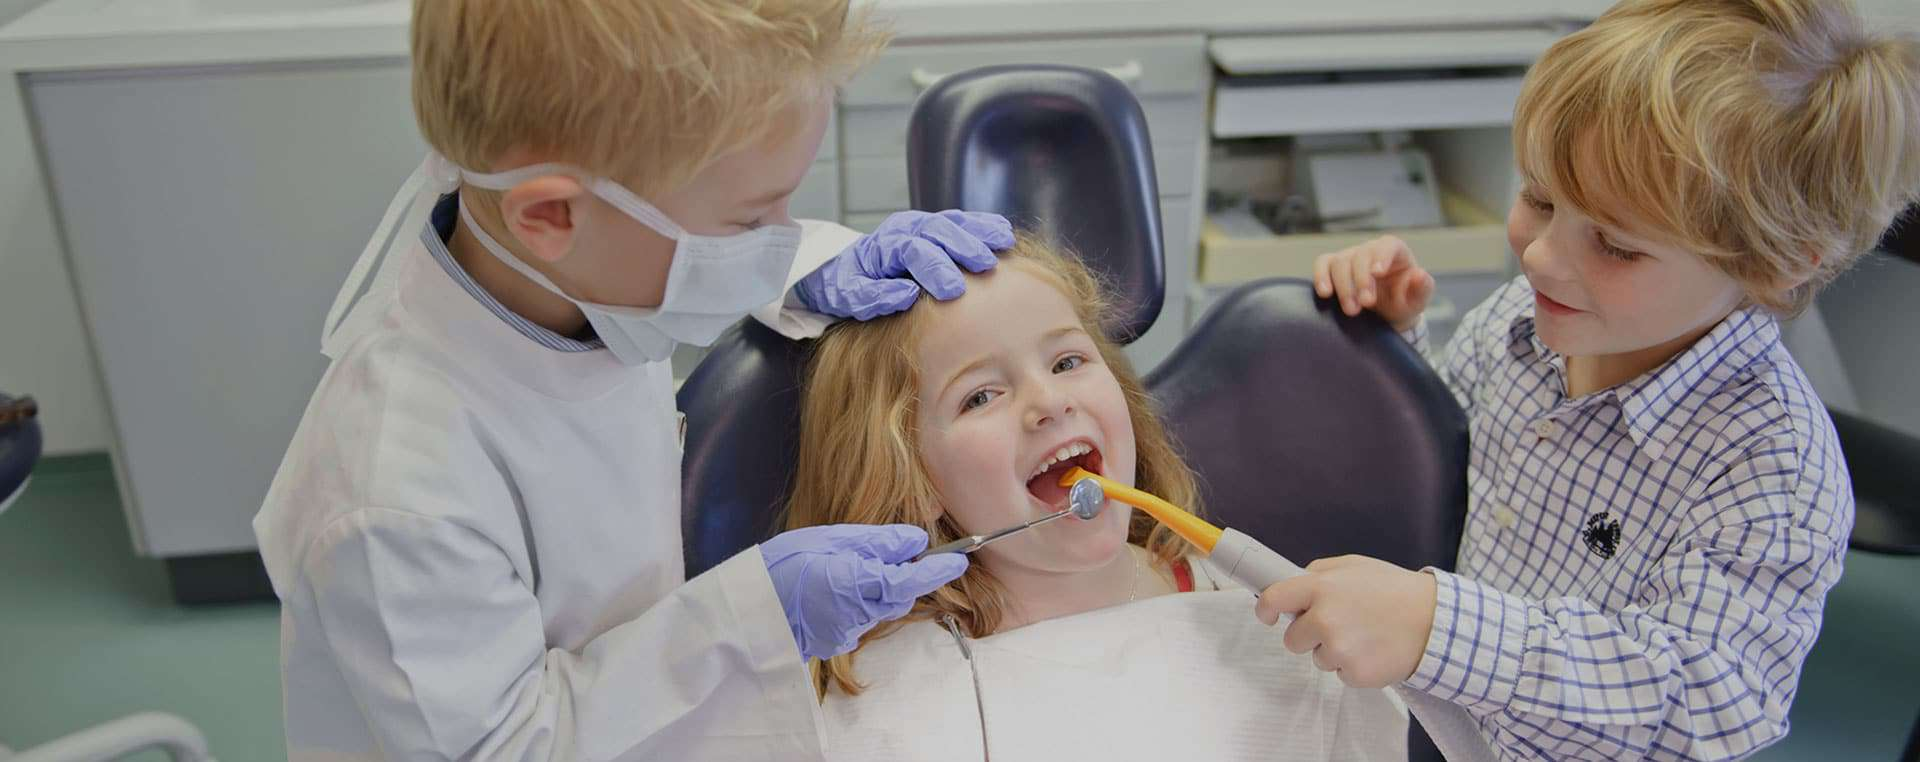 Yardley Pediatric Dentist